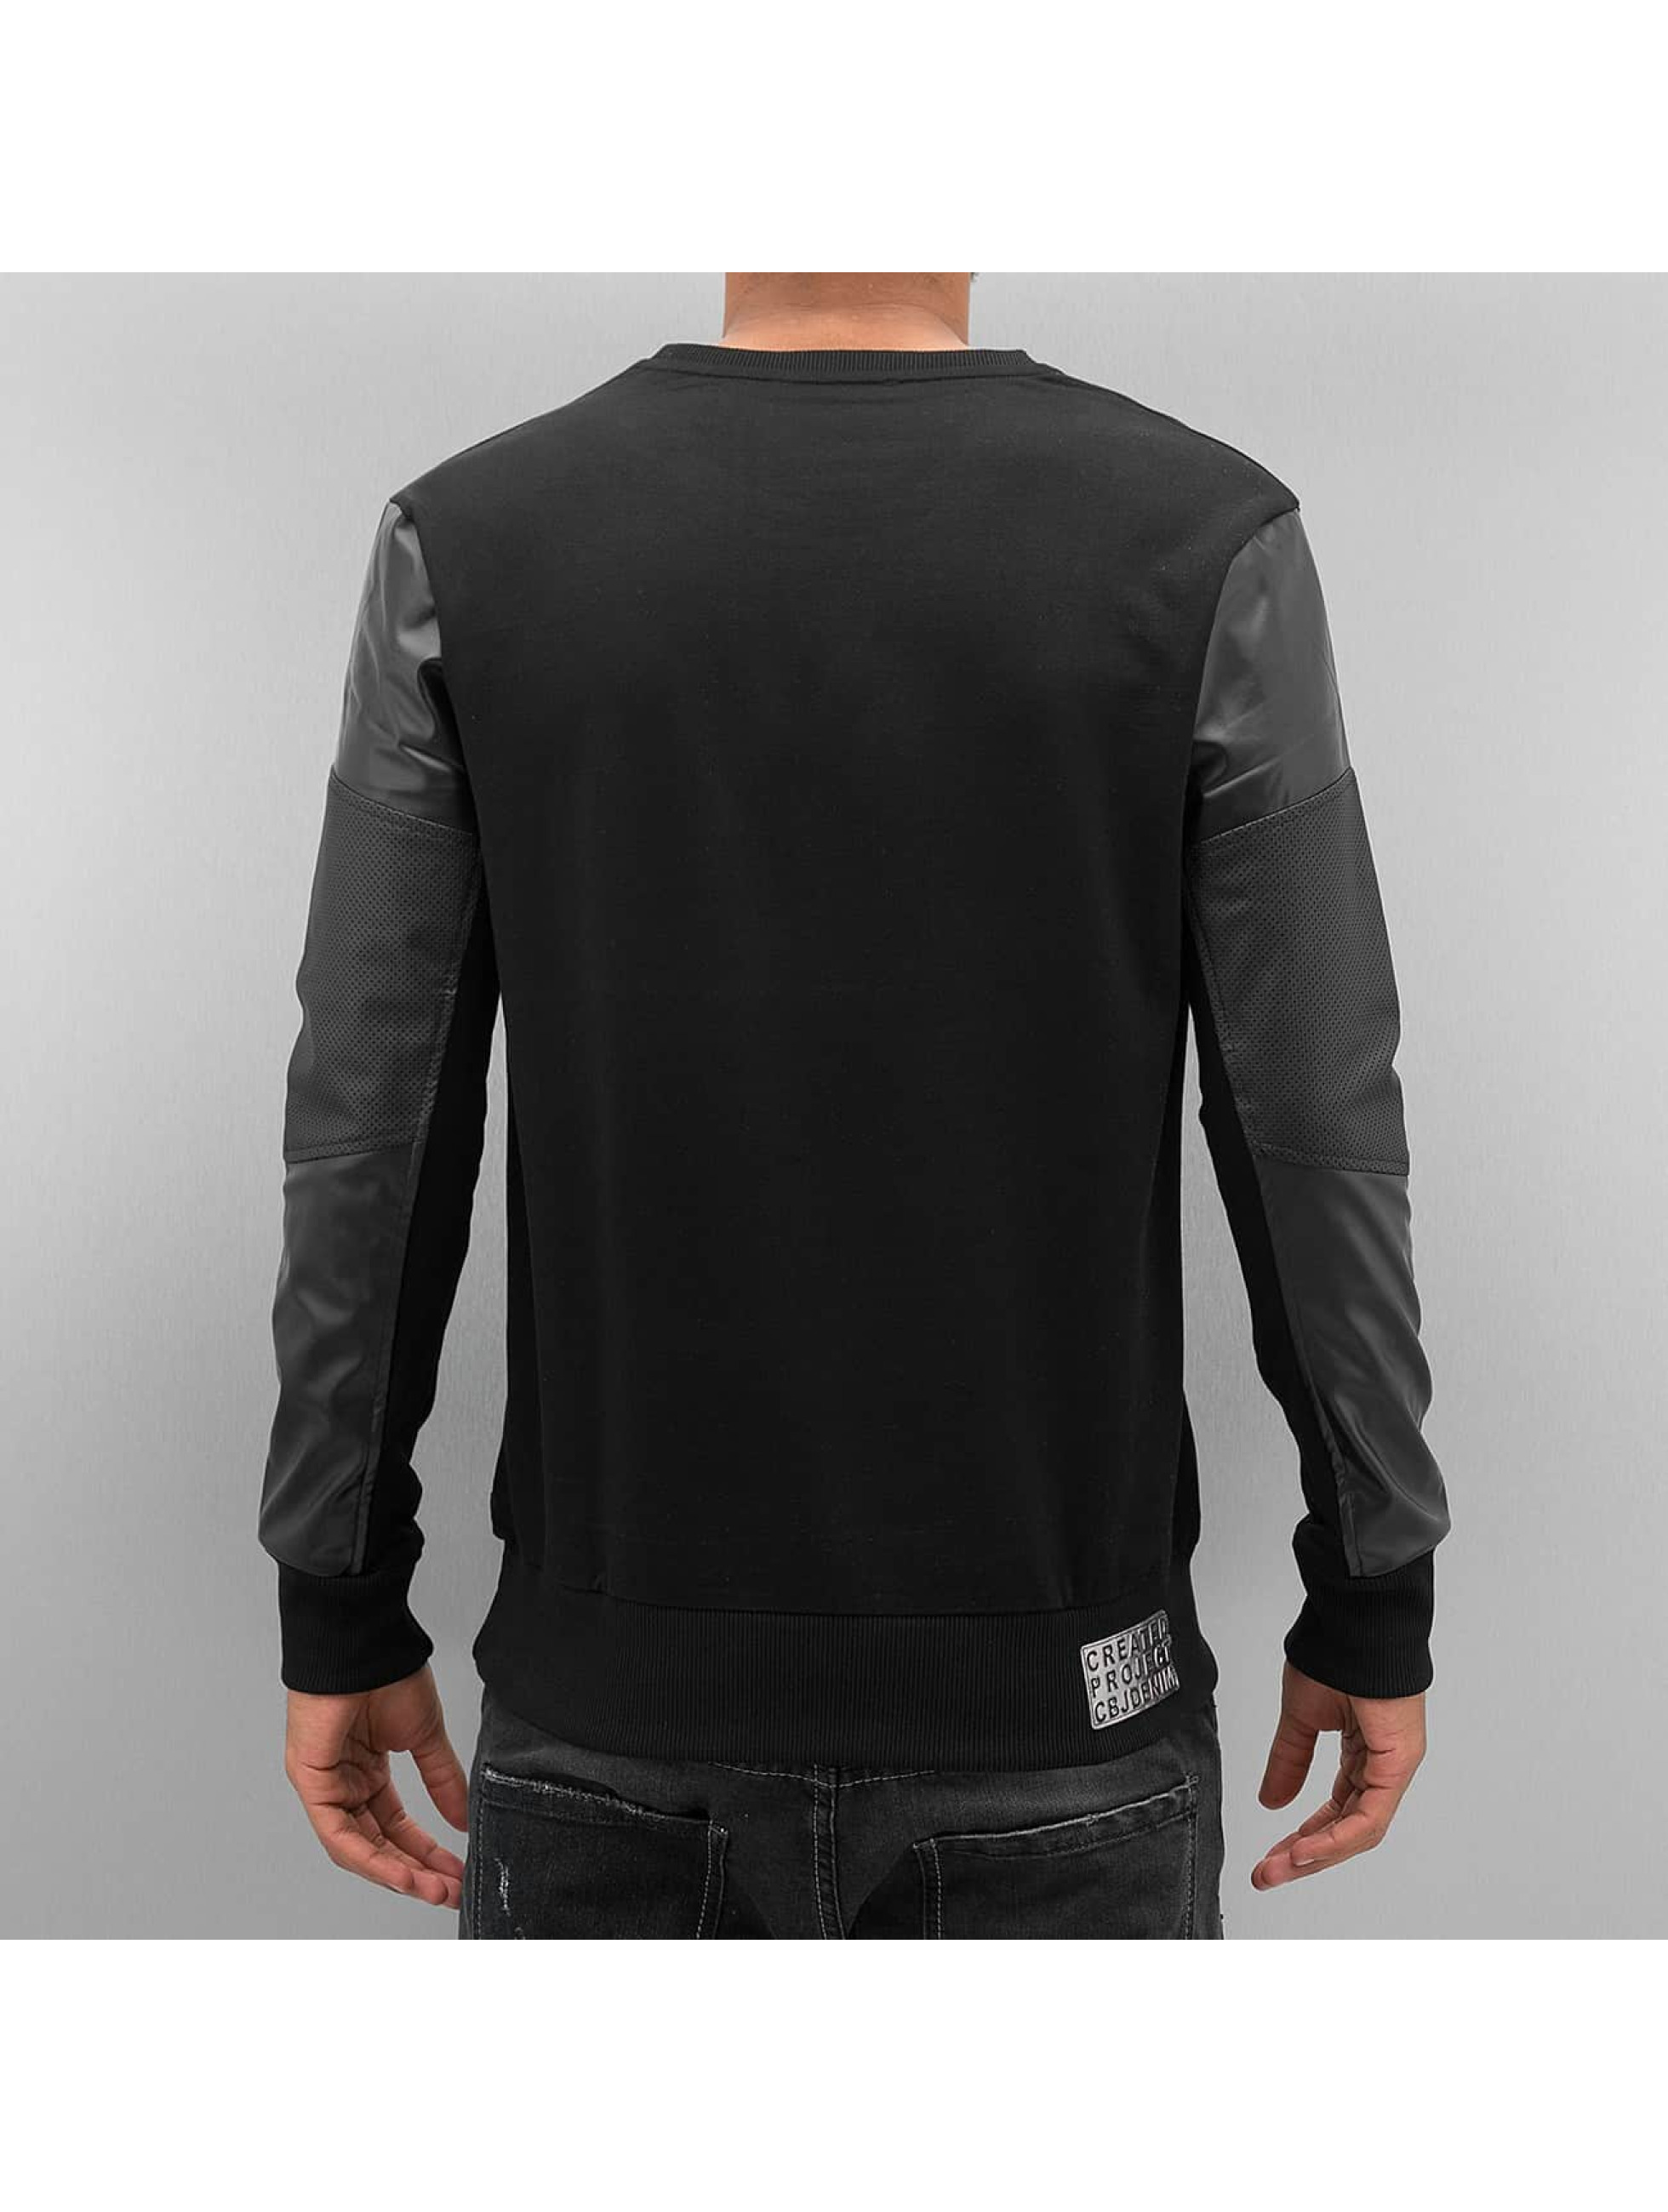 Cipo & Baxx Jersey Fake Leather negro